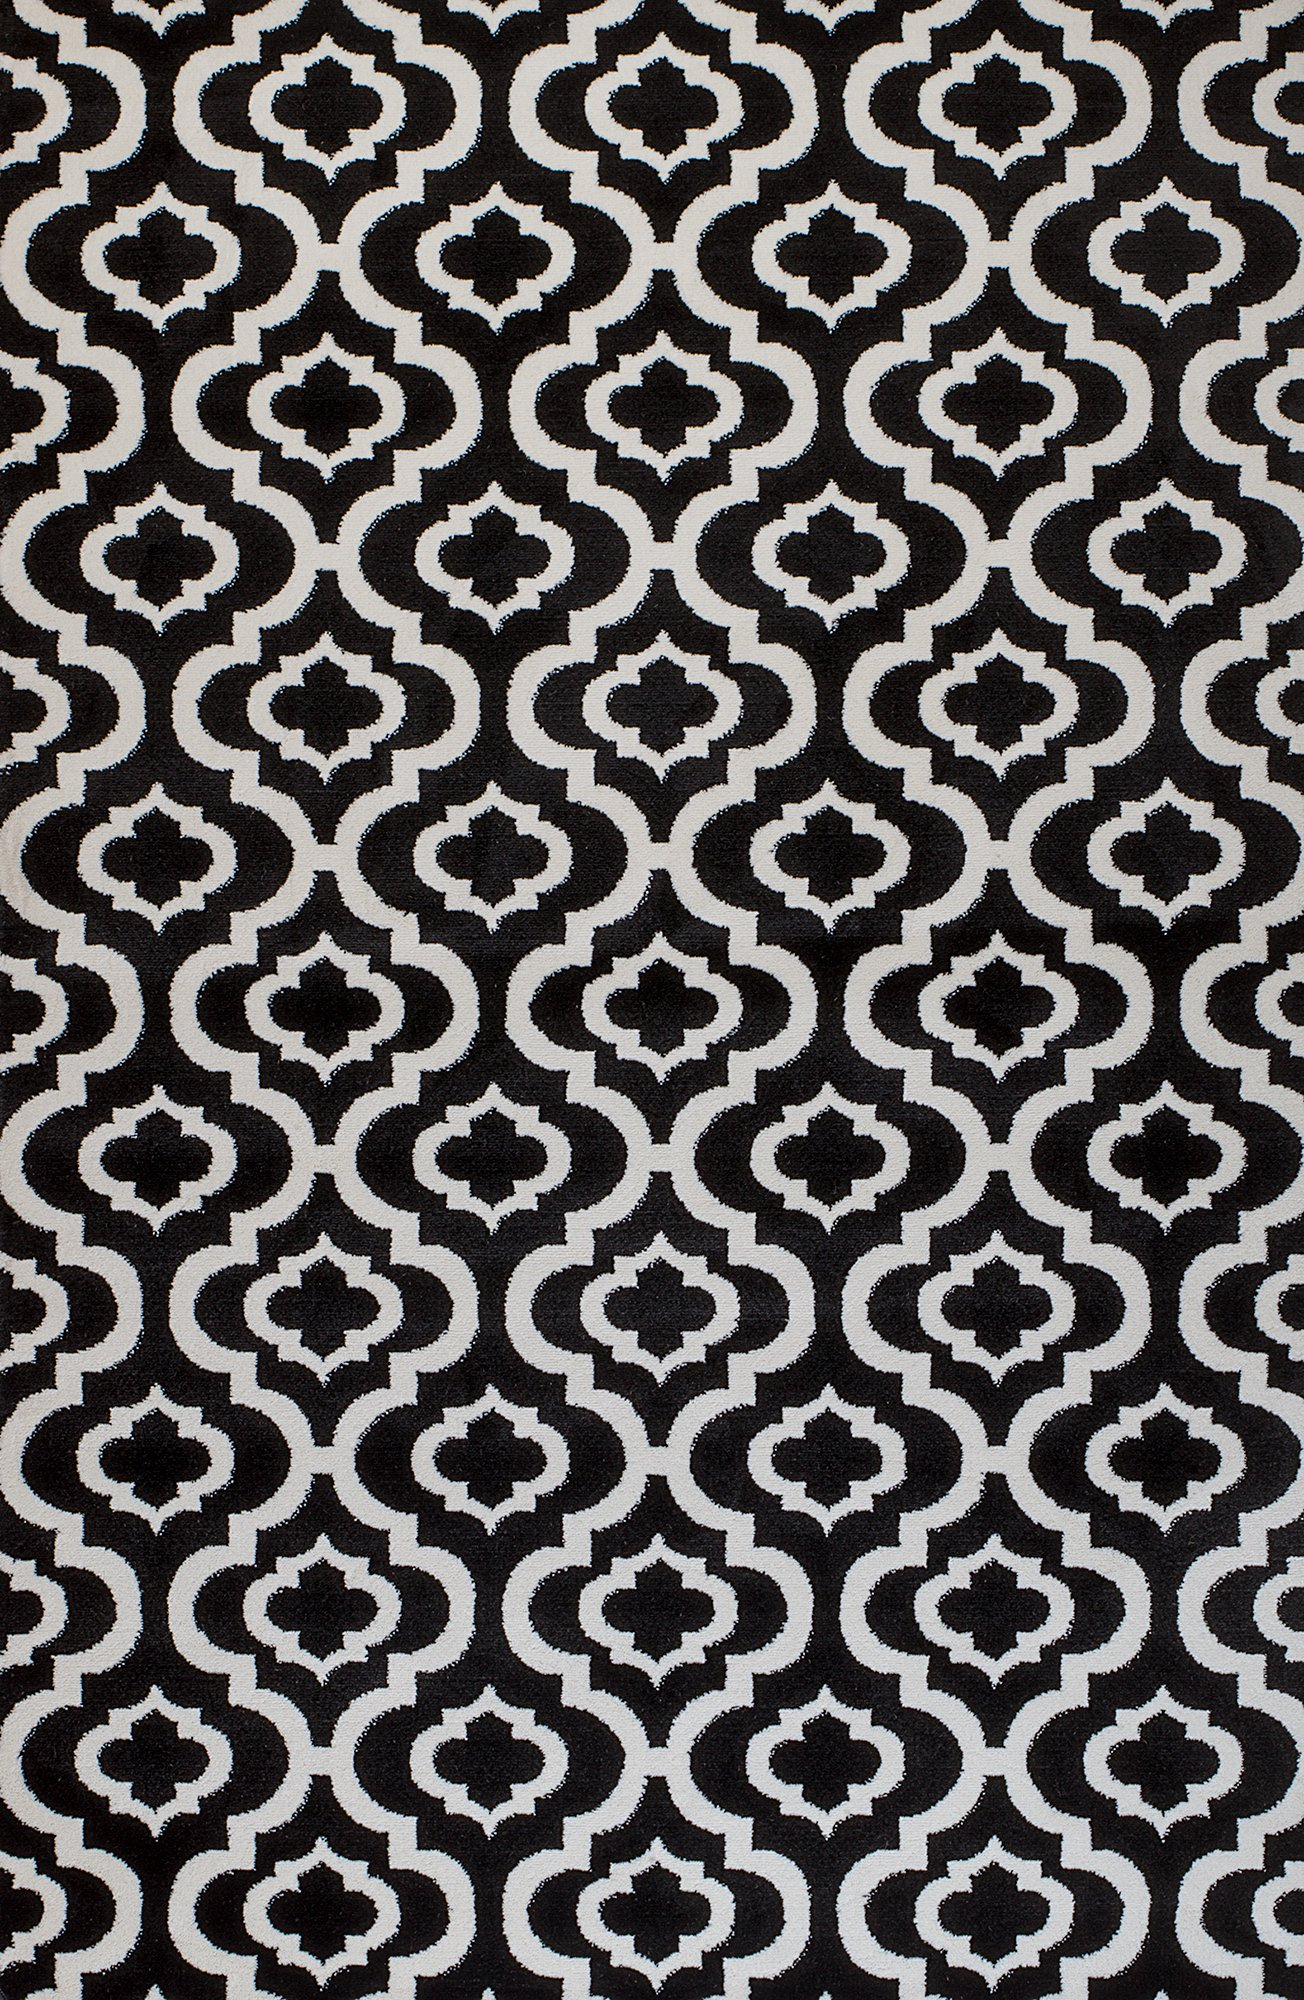 Summit OK-17VA-WDMW 25 New Black White Trellis Lattice Modern Abstract Many Size Available , 22 INCH X 35 INCH SCATTER RUG DOOR MAT SIZE